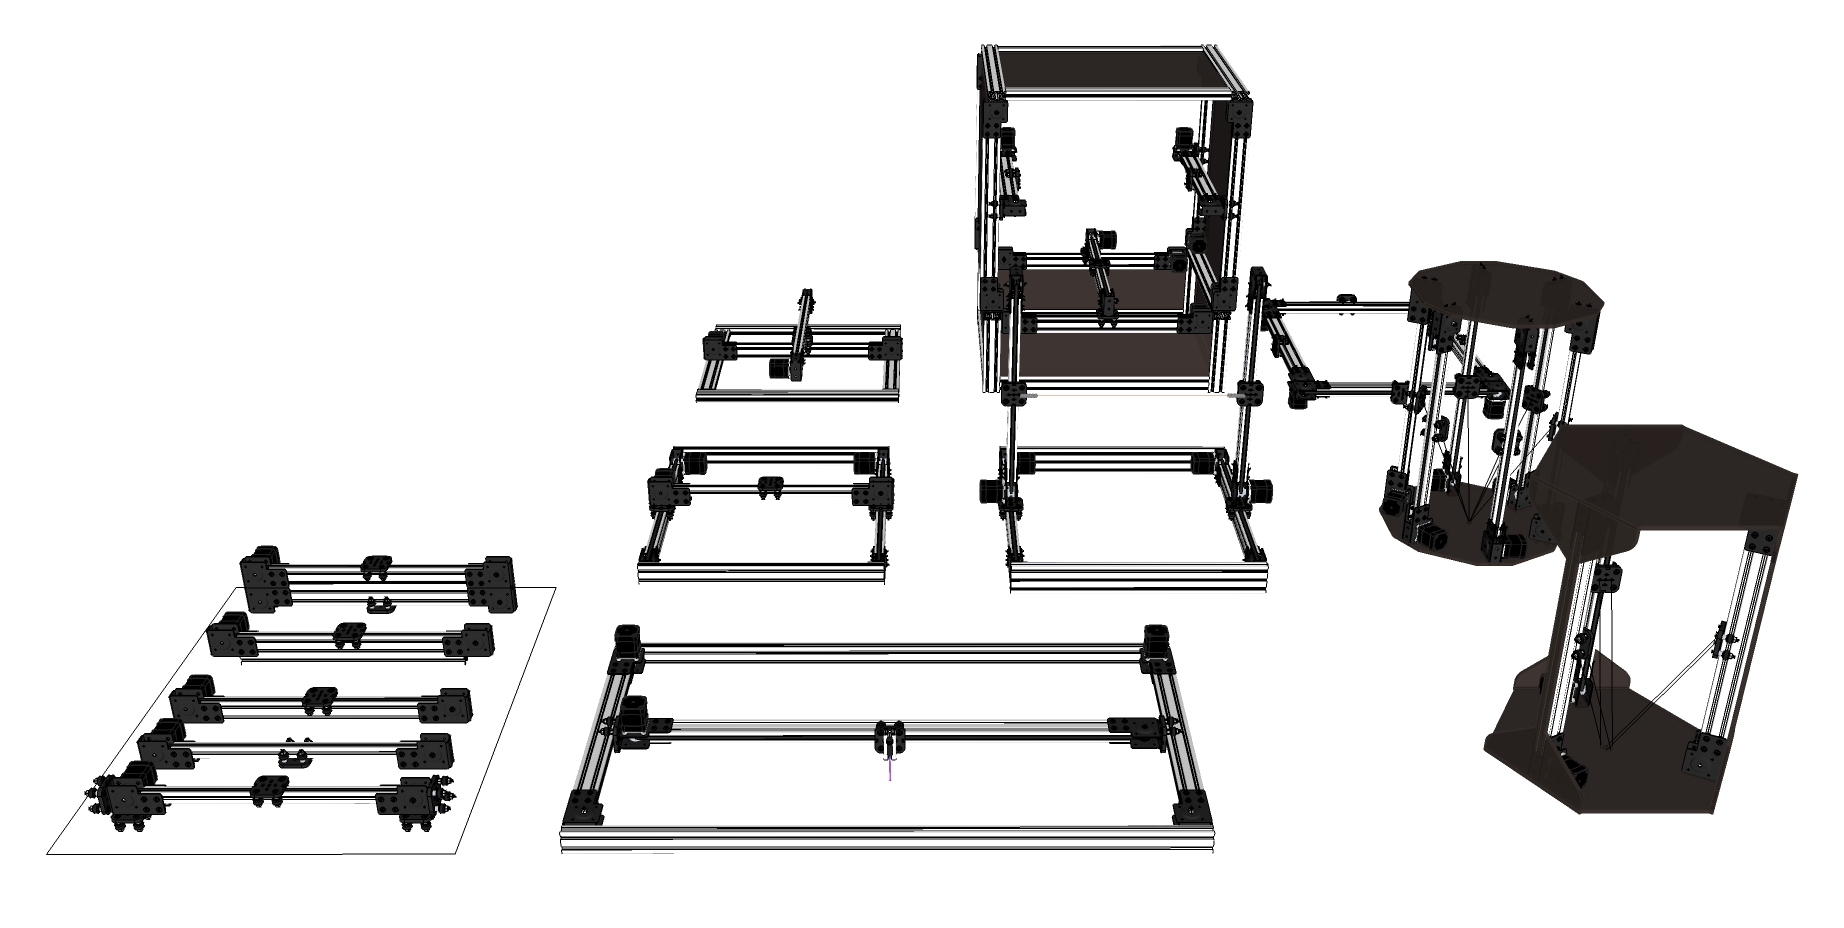 mini-v-gantry-kit-examples.jpg